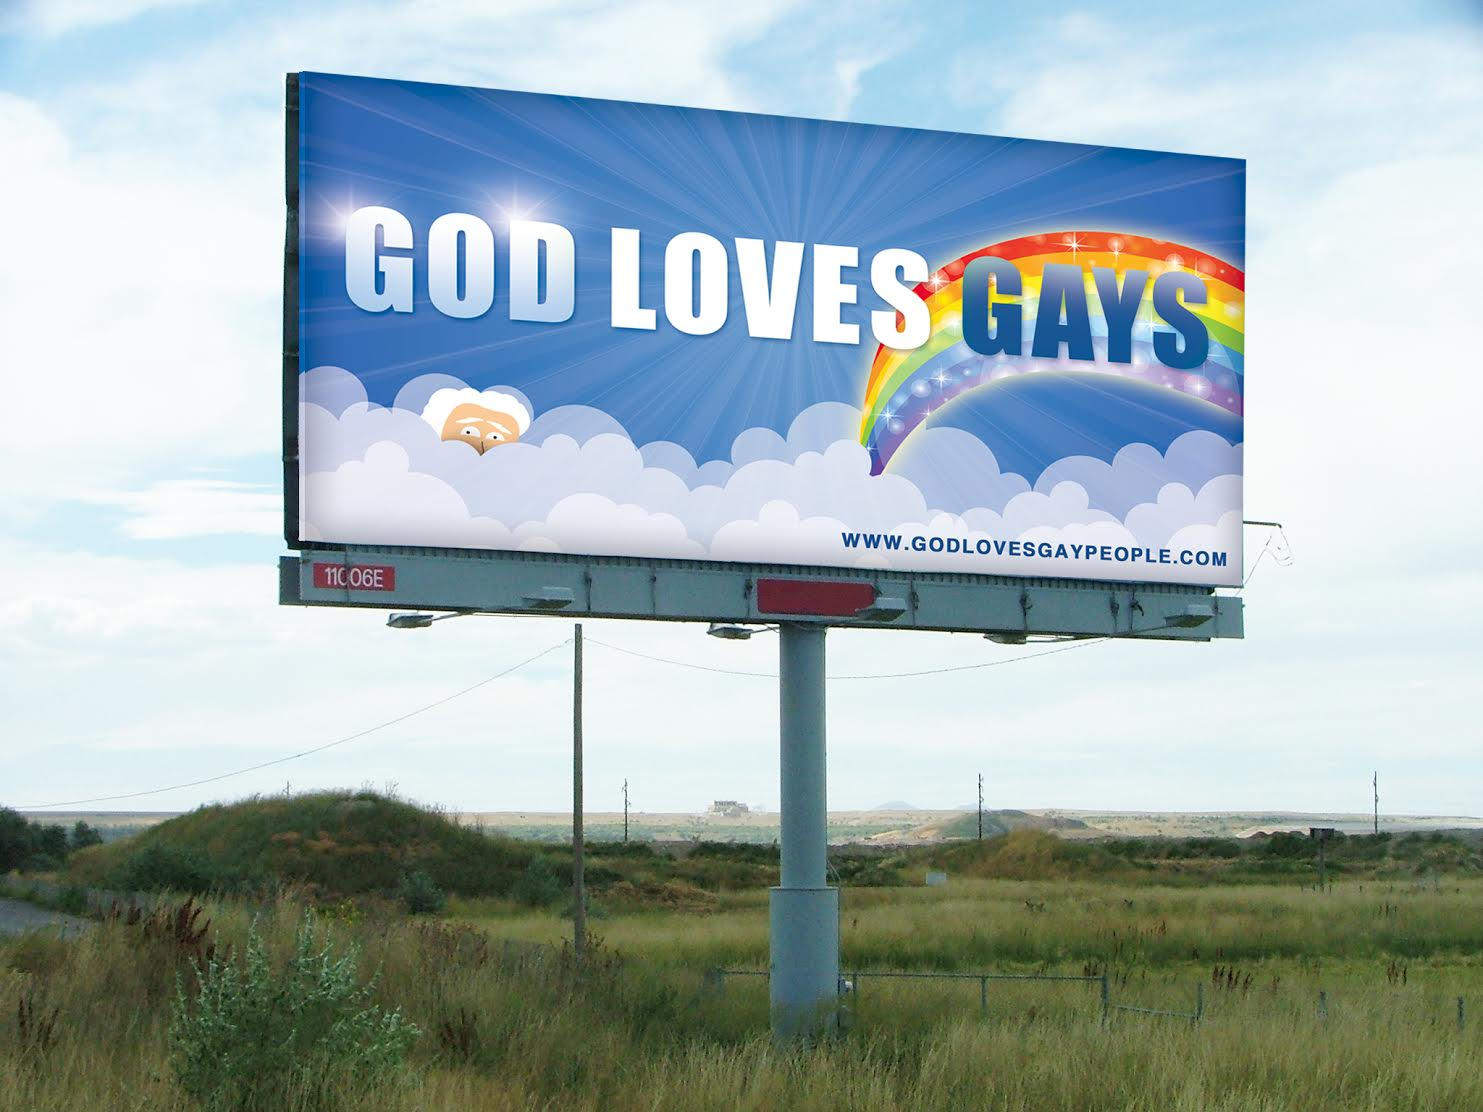 'God' of Facebook crowdfunds billboard saying he loves gays to spite Westboro Baptists